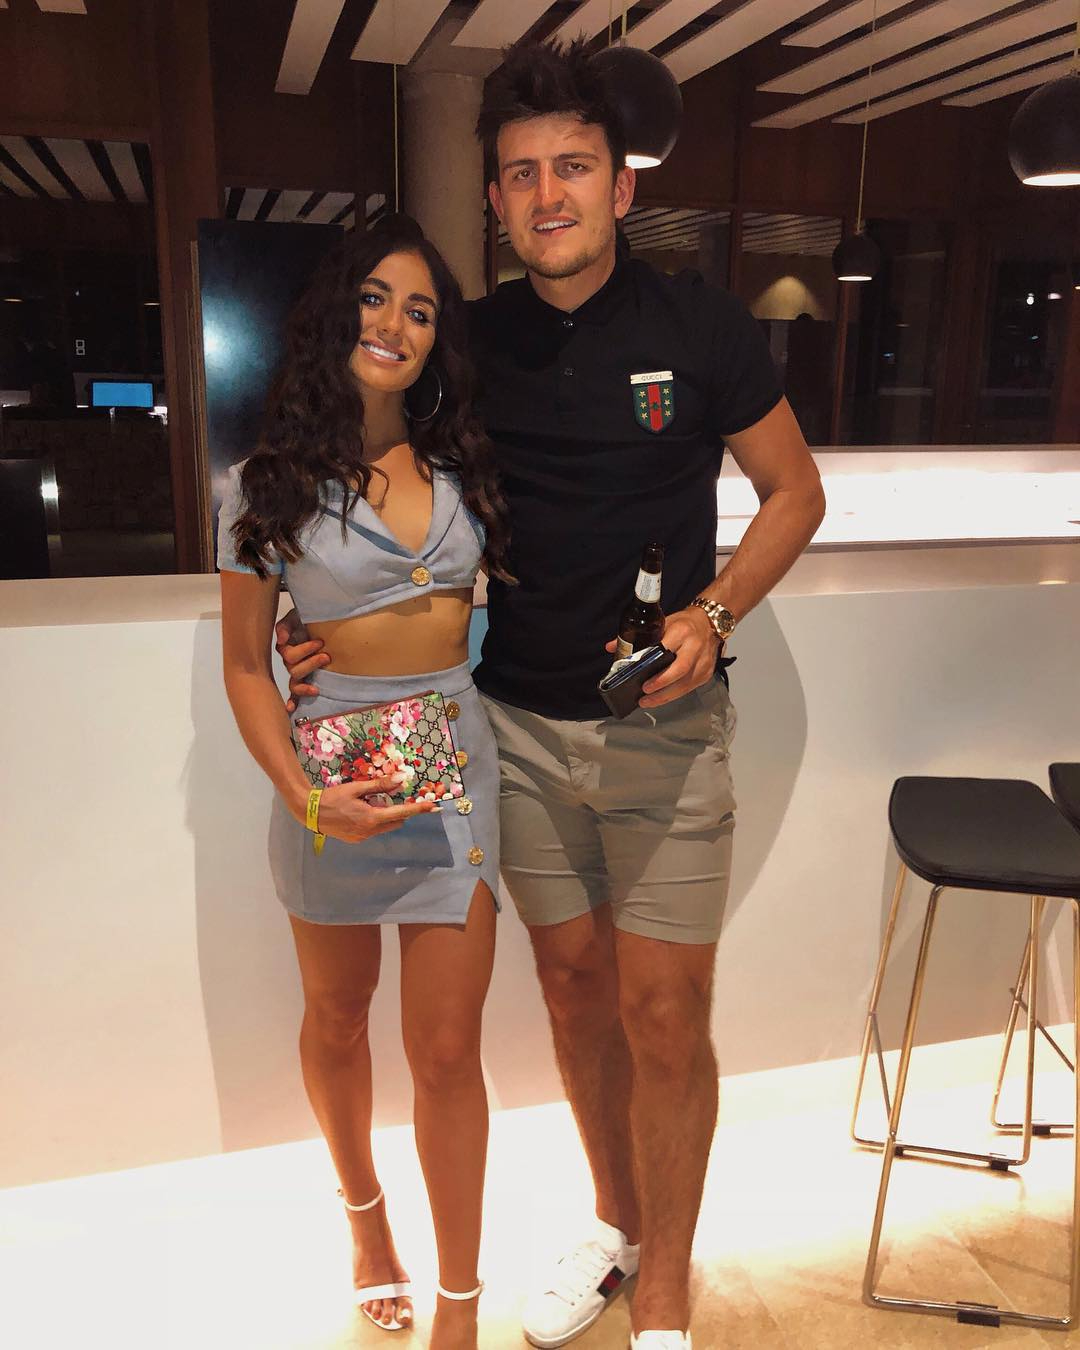 Harry Maguire Meme : harry, maguire, Welcome, Harry, Maguire's, Fiancee, Posts, Picture, Herself, Manchester, Hotel